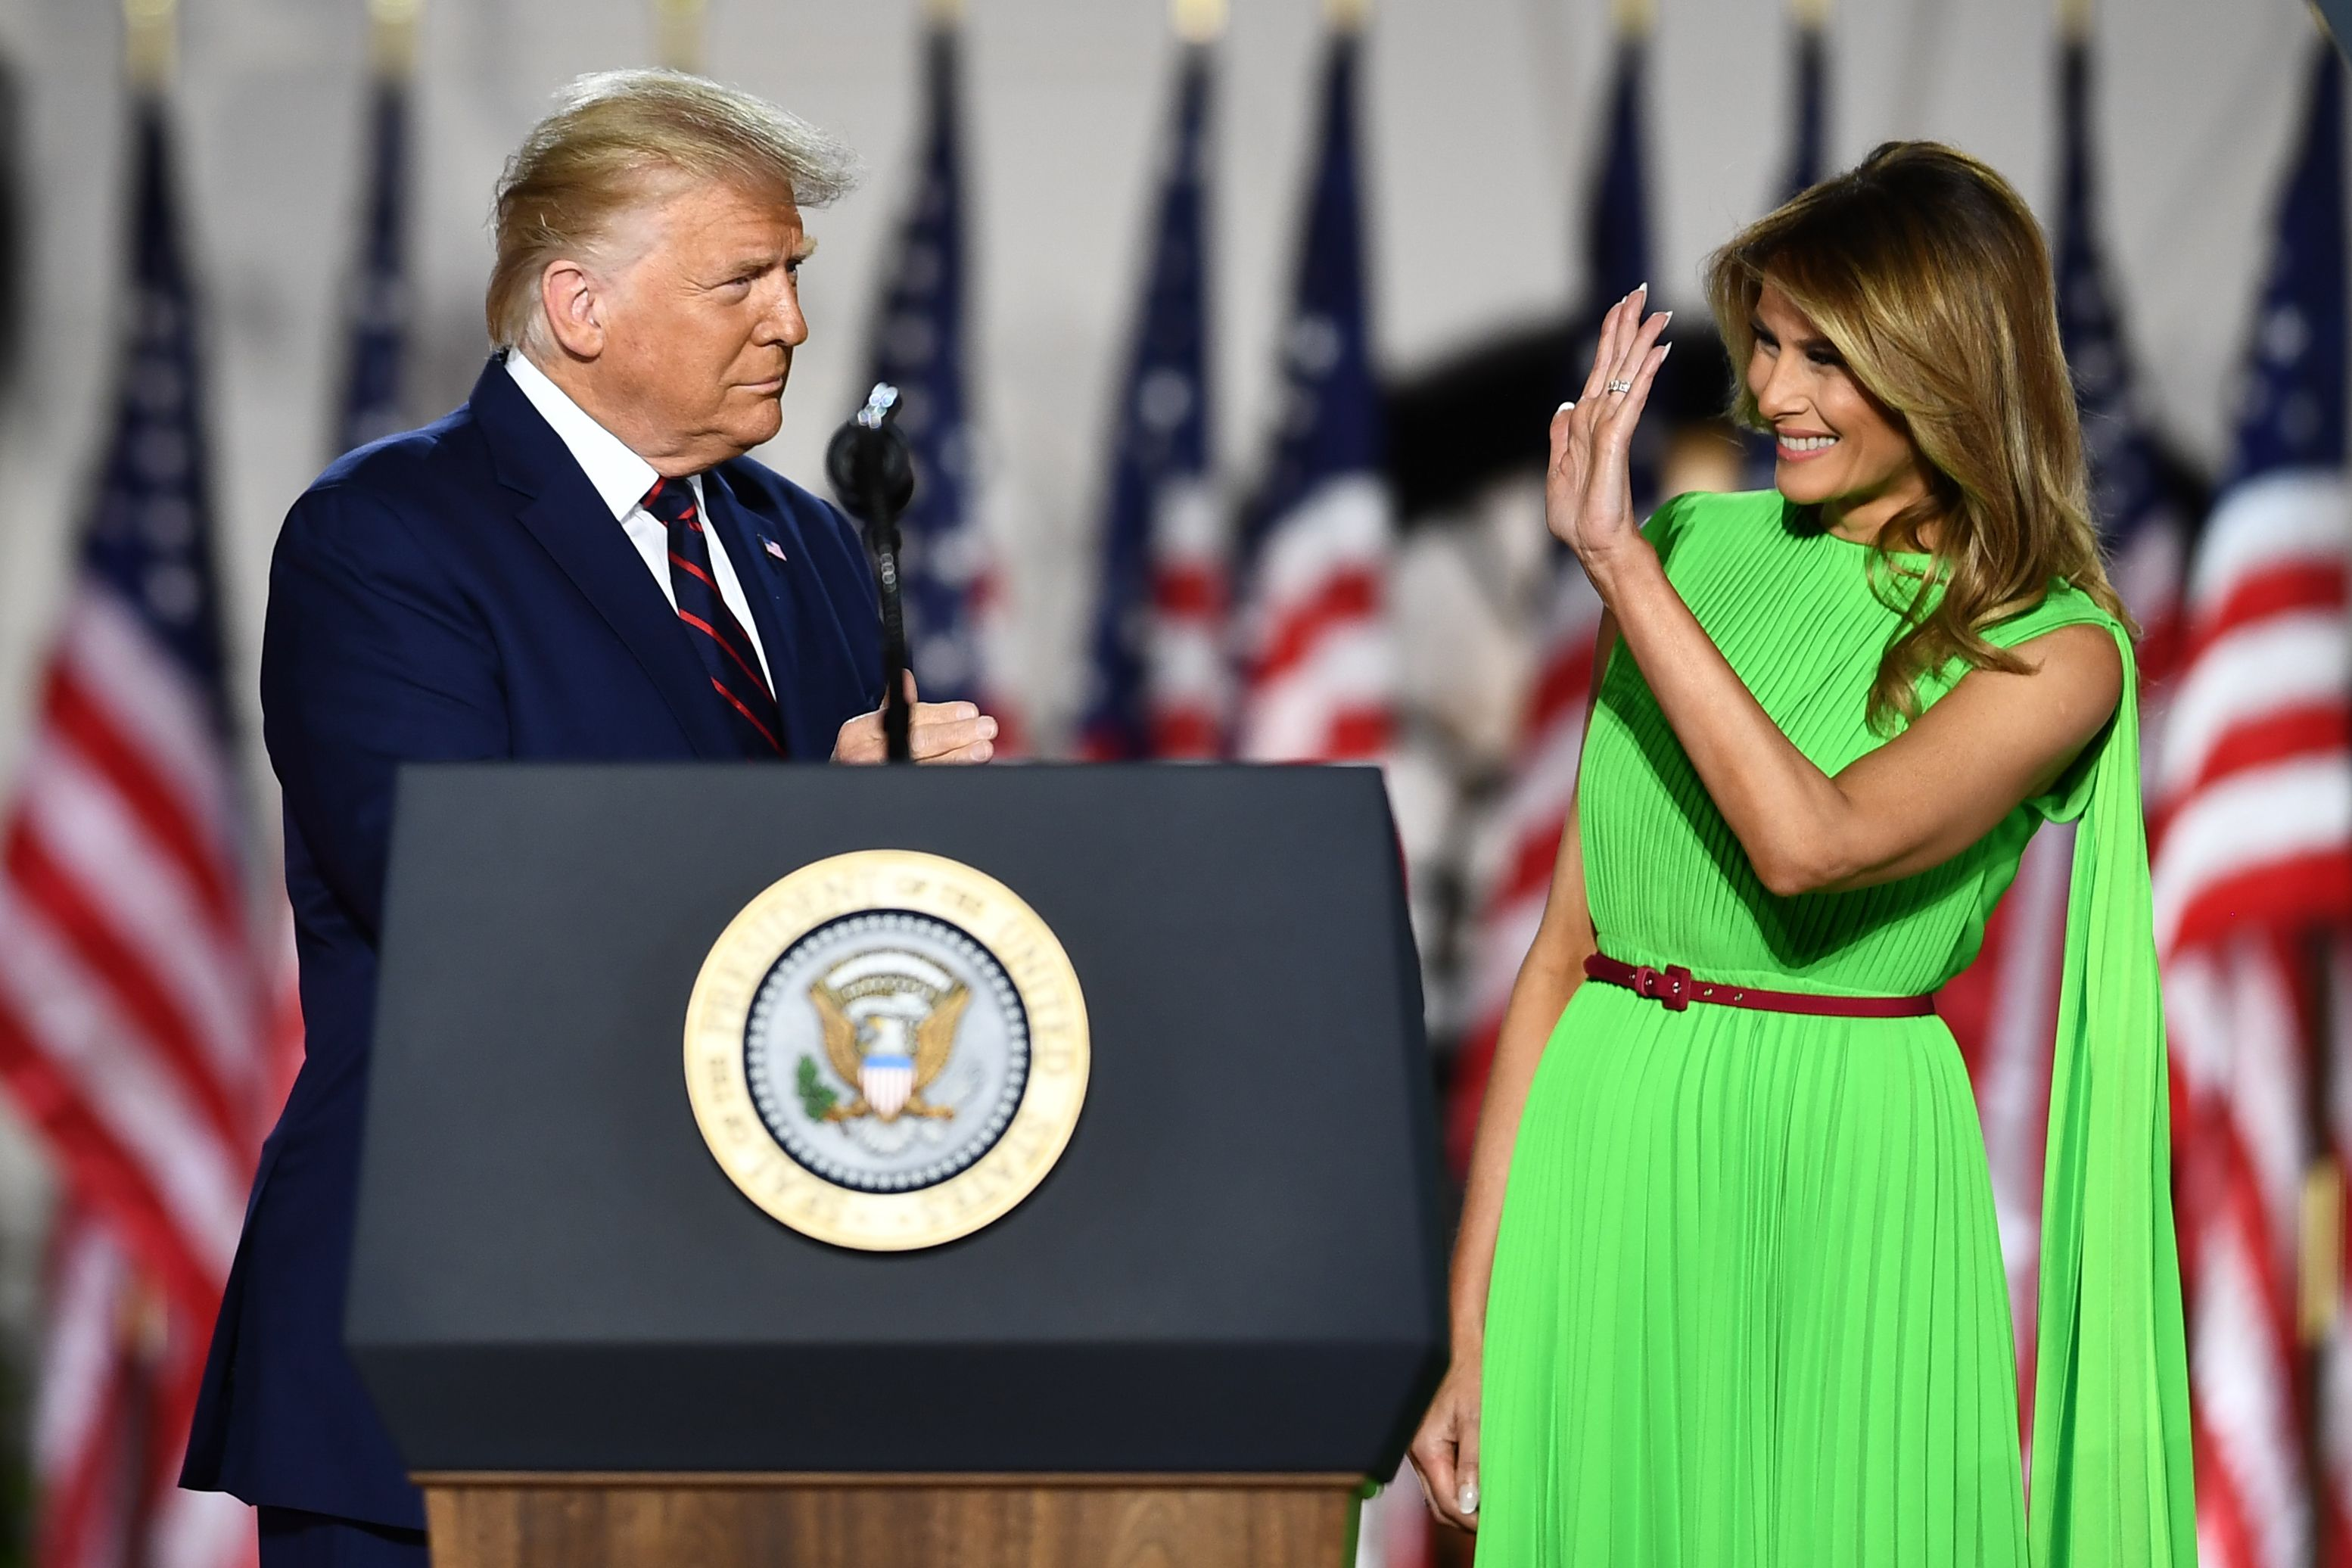 Melania Trump's green screen dress goes viral | Valentino gown